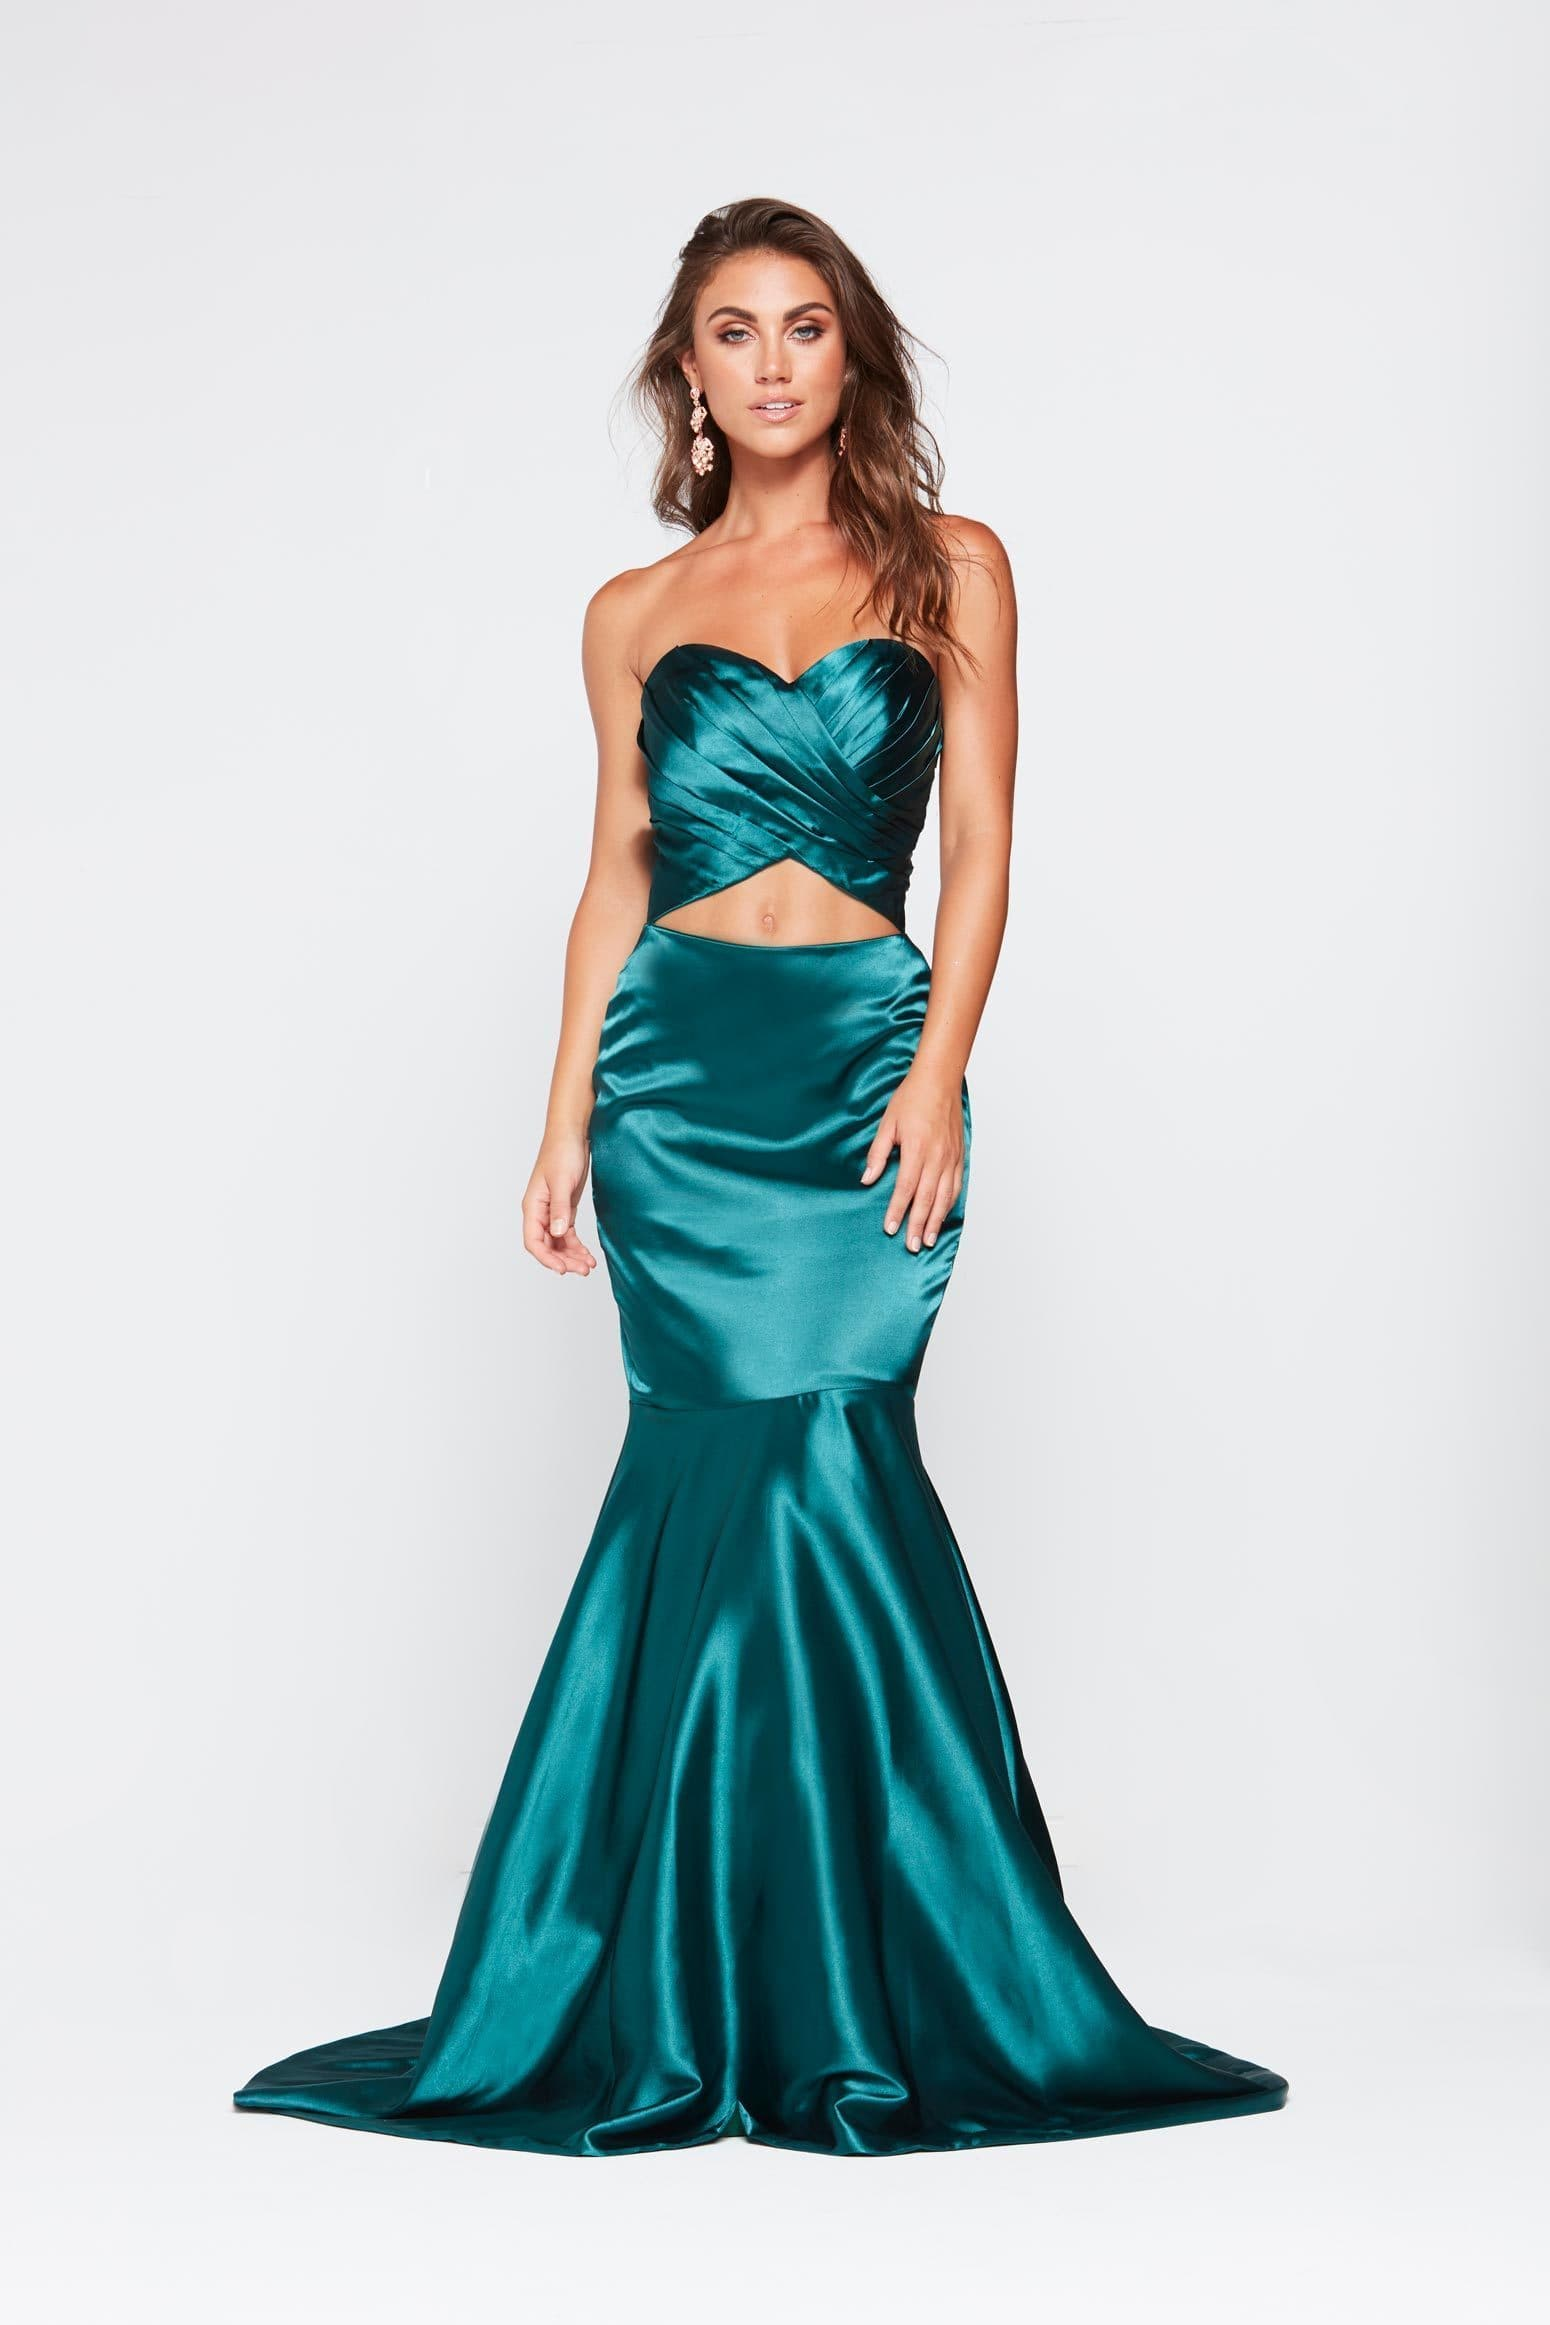 To acquire Satin emerald gown pictures trends